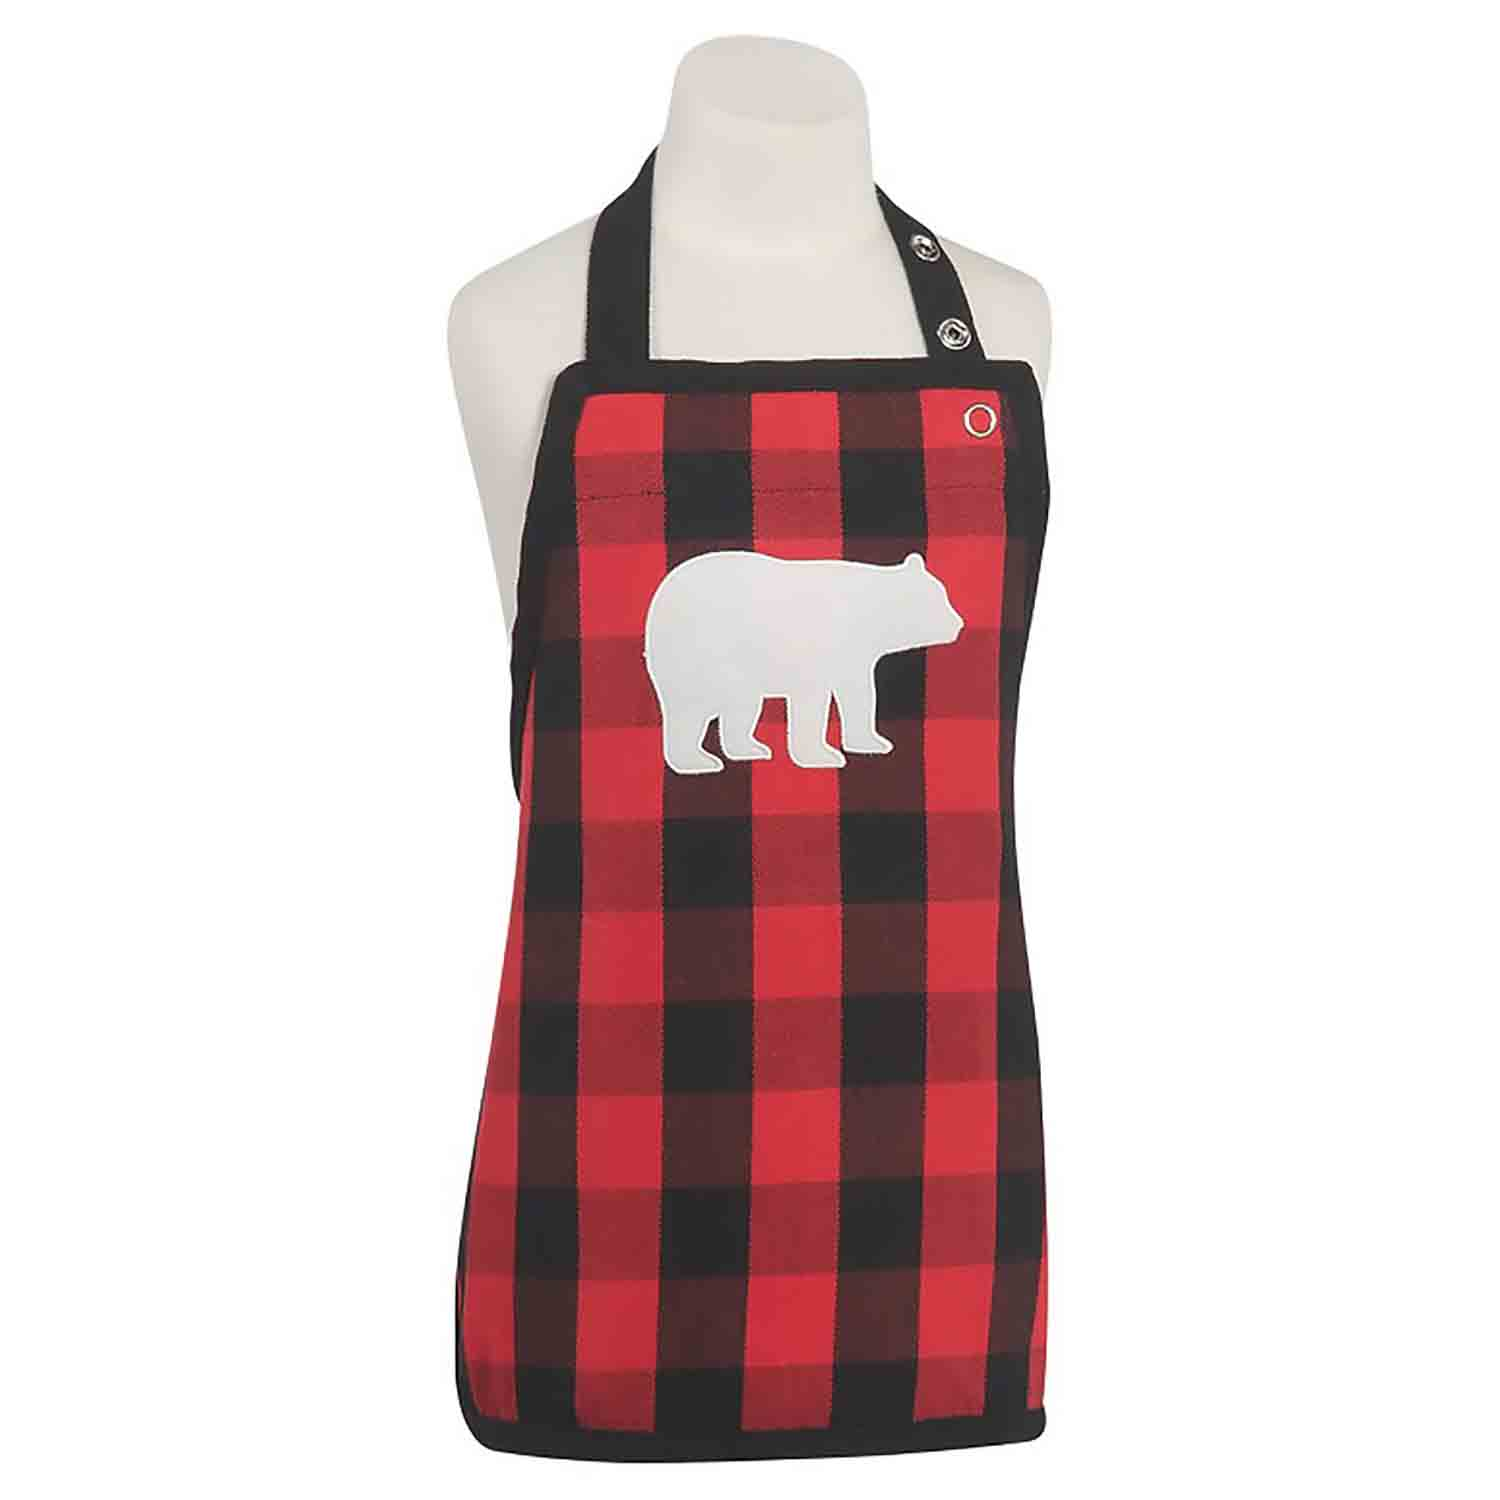 Kids' Apron - Buffalo Check Bear